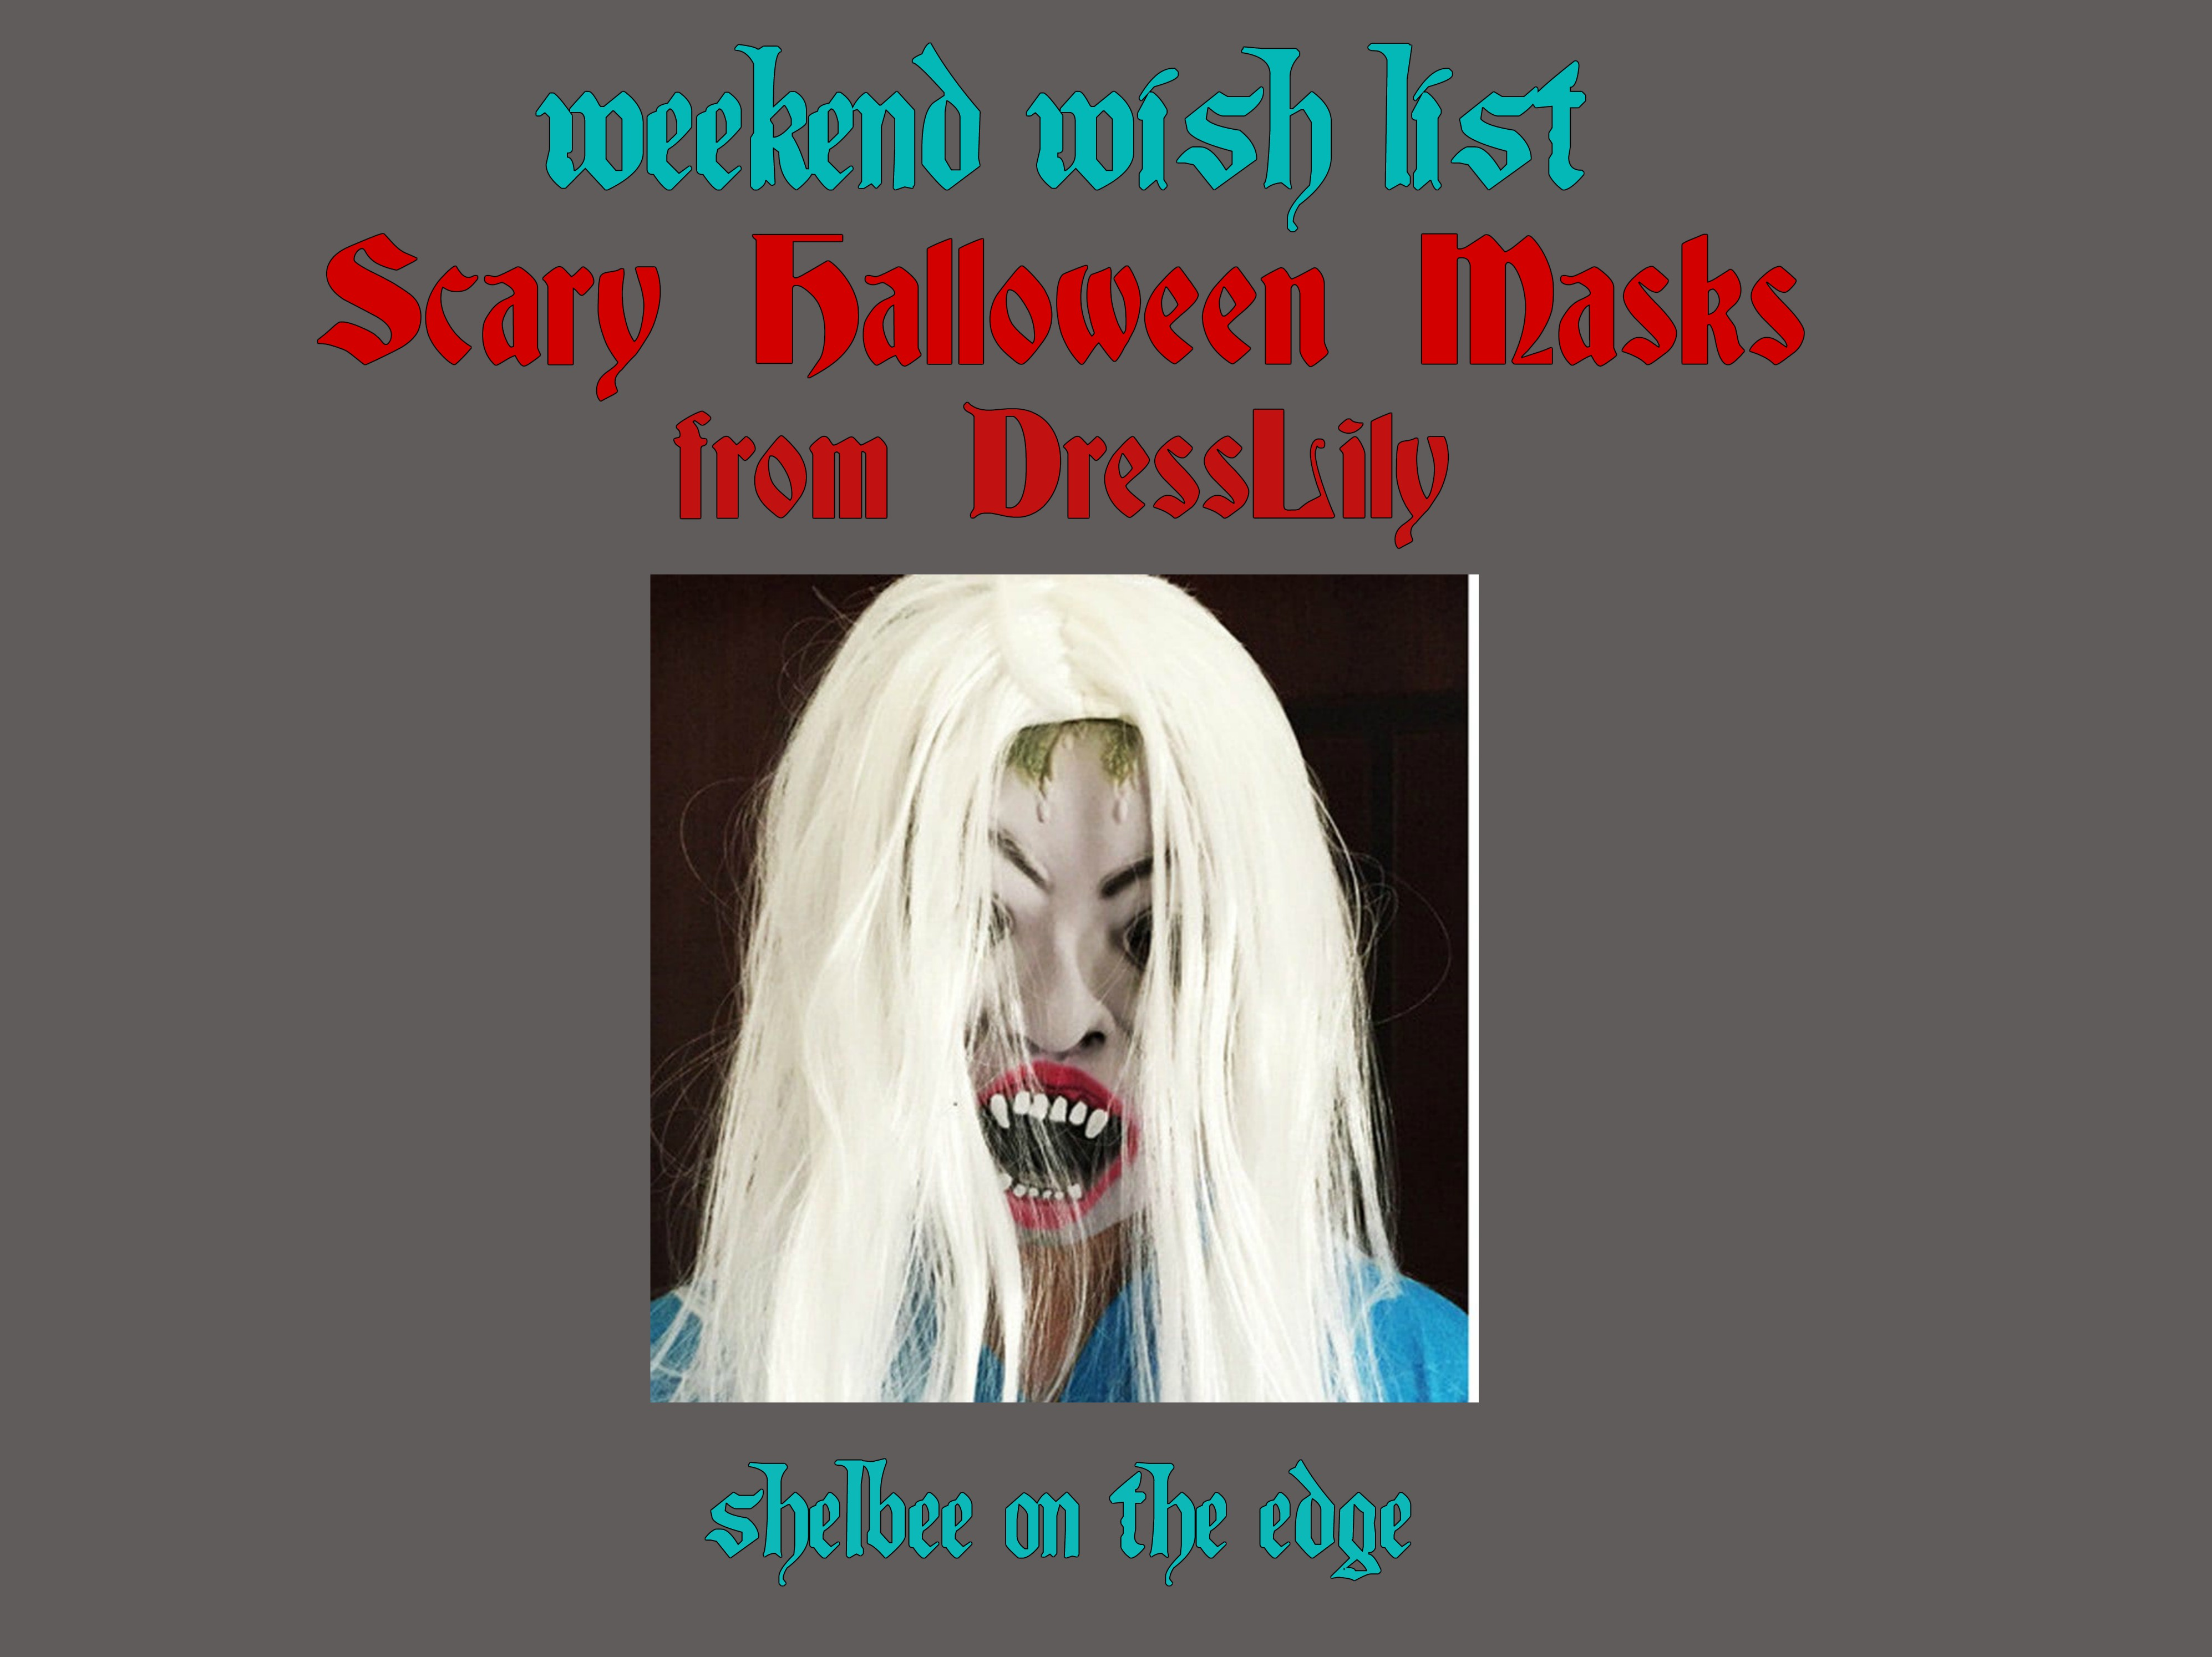 Weekend Wish List: Scary Halloween Masks from DressLily